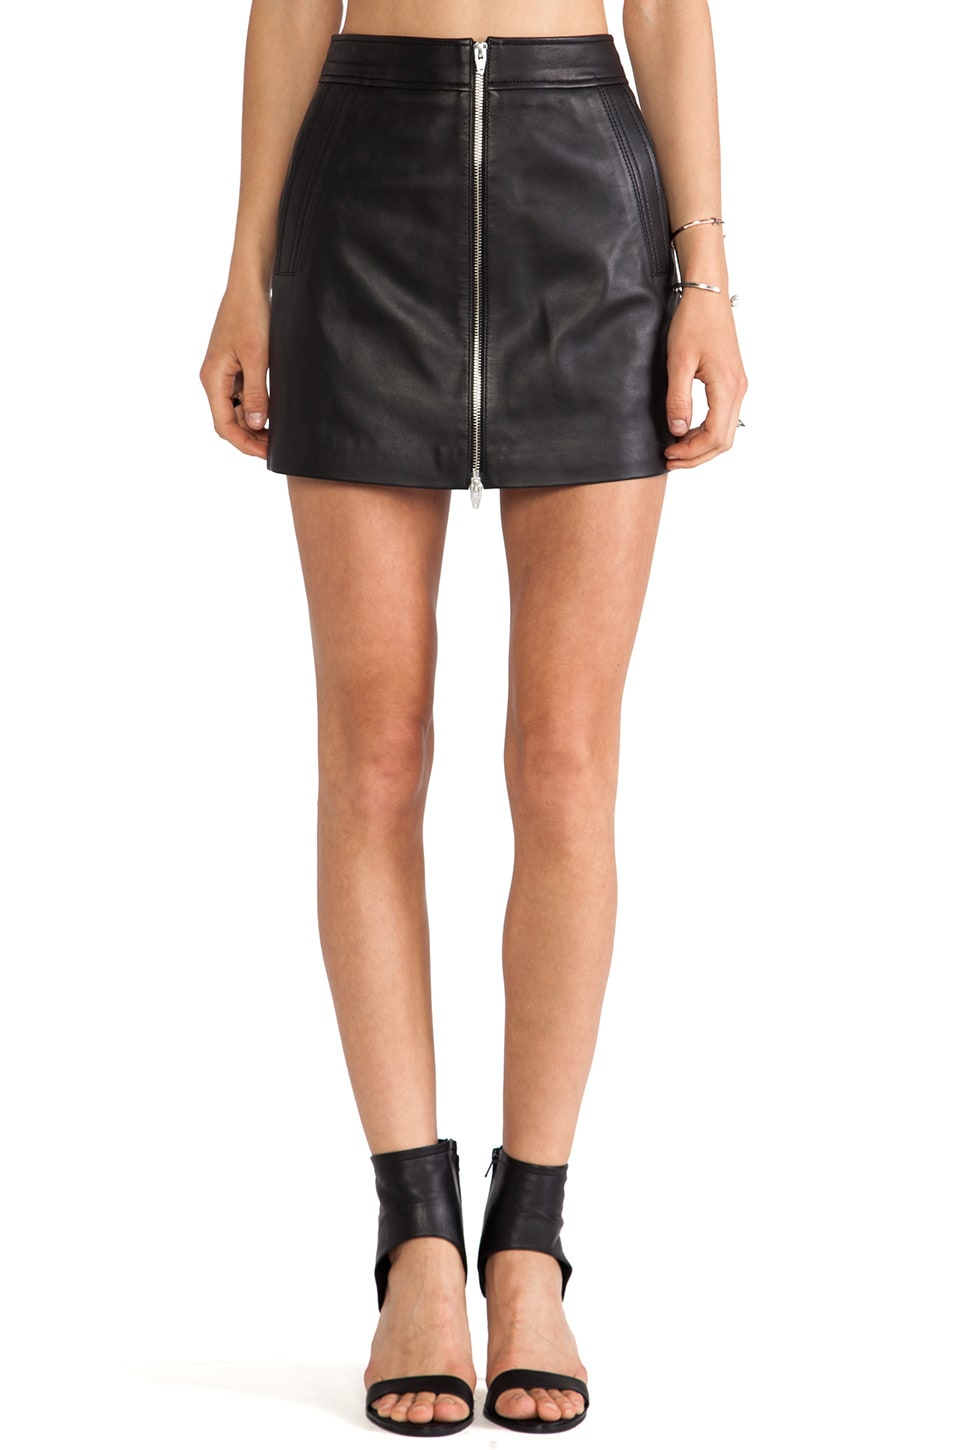 T by Alexander Wang Lamb Leather 2 Way Zip Skirt in Black